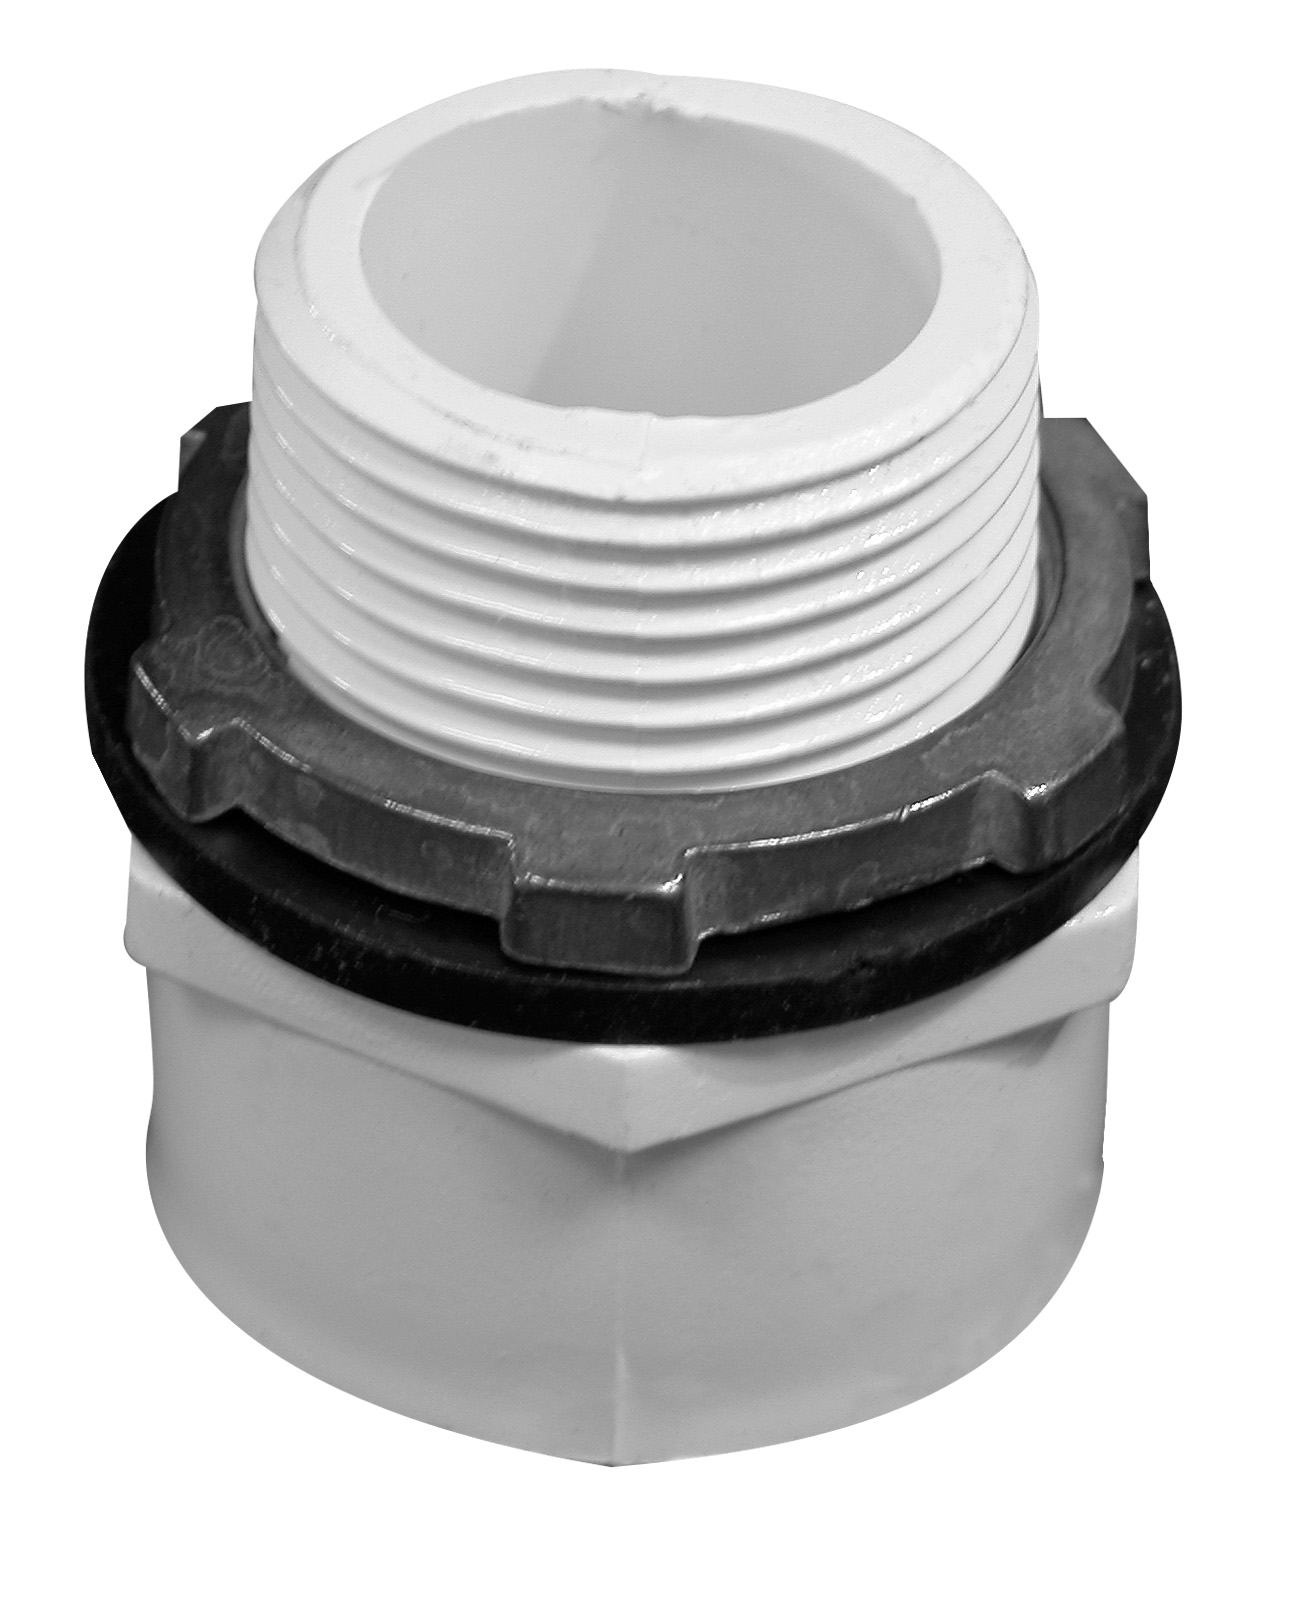 Adapter Kit for Plastic and Aluminum Washing Machine Pans, Combination 1 x 1 1/2 Male Adapter Drain Kit.